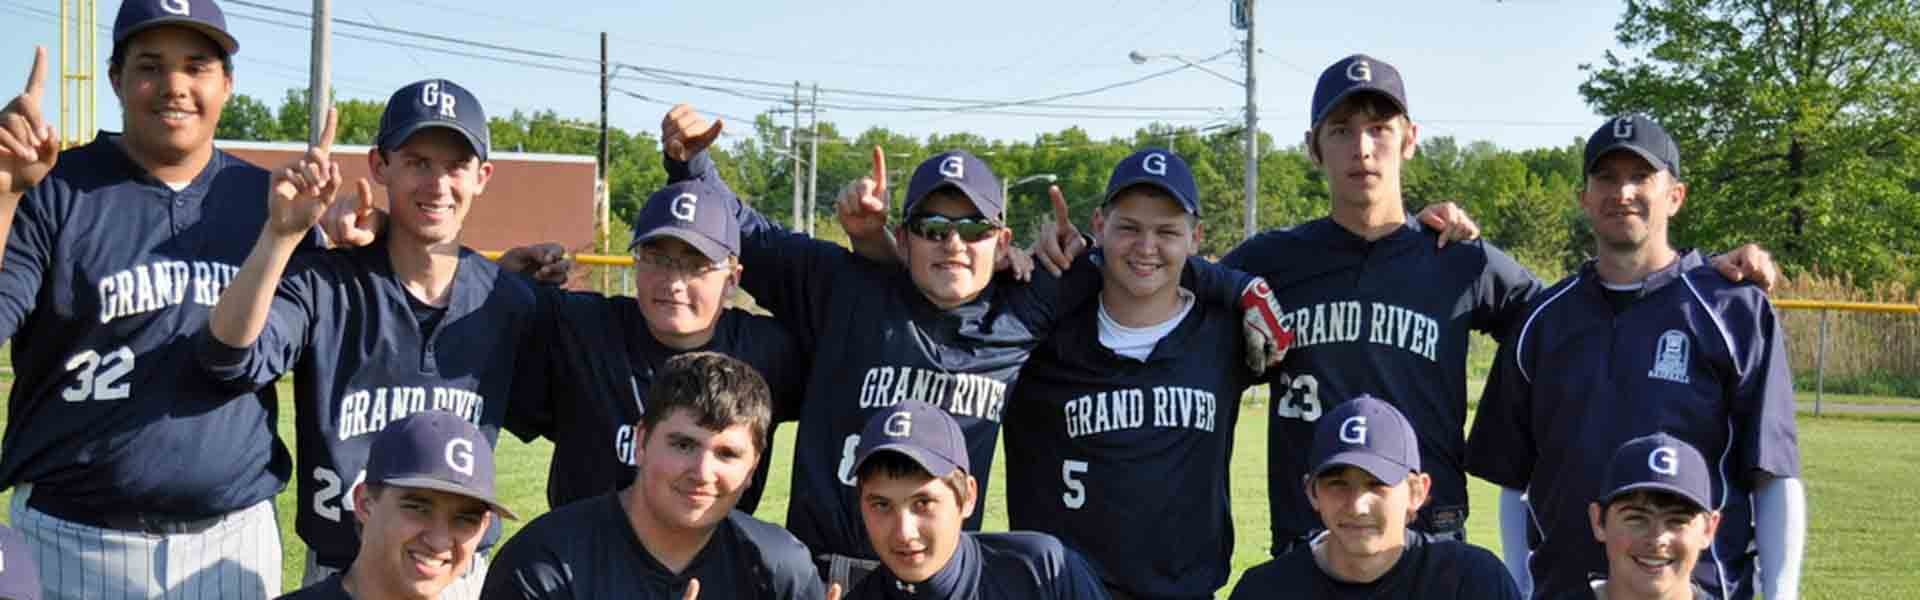 Grand River Ohio USA Baseball Banner 2019